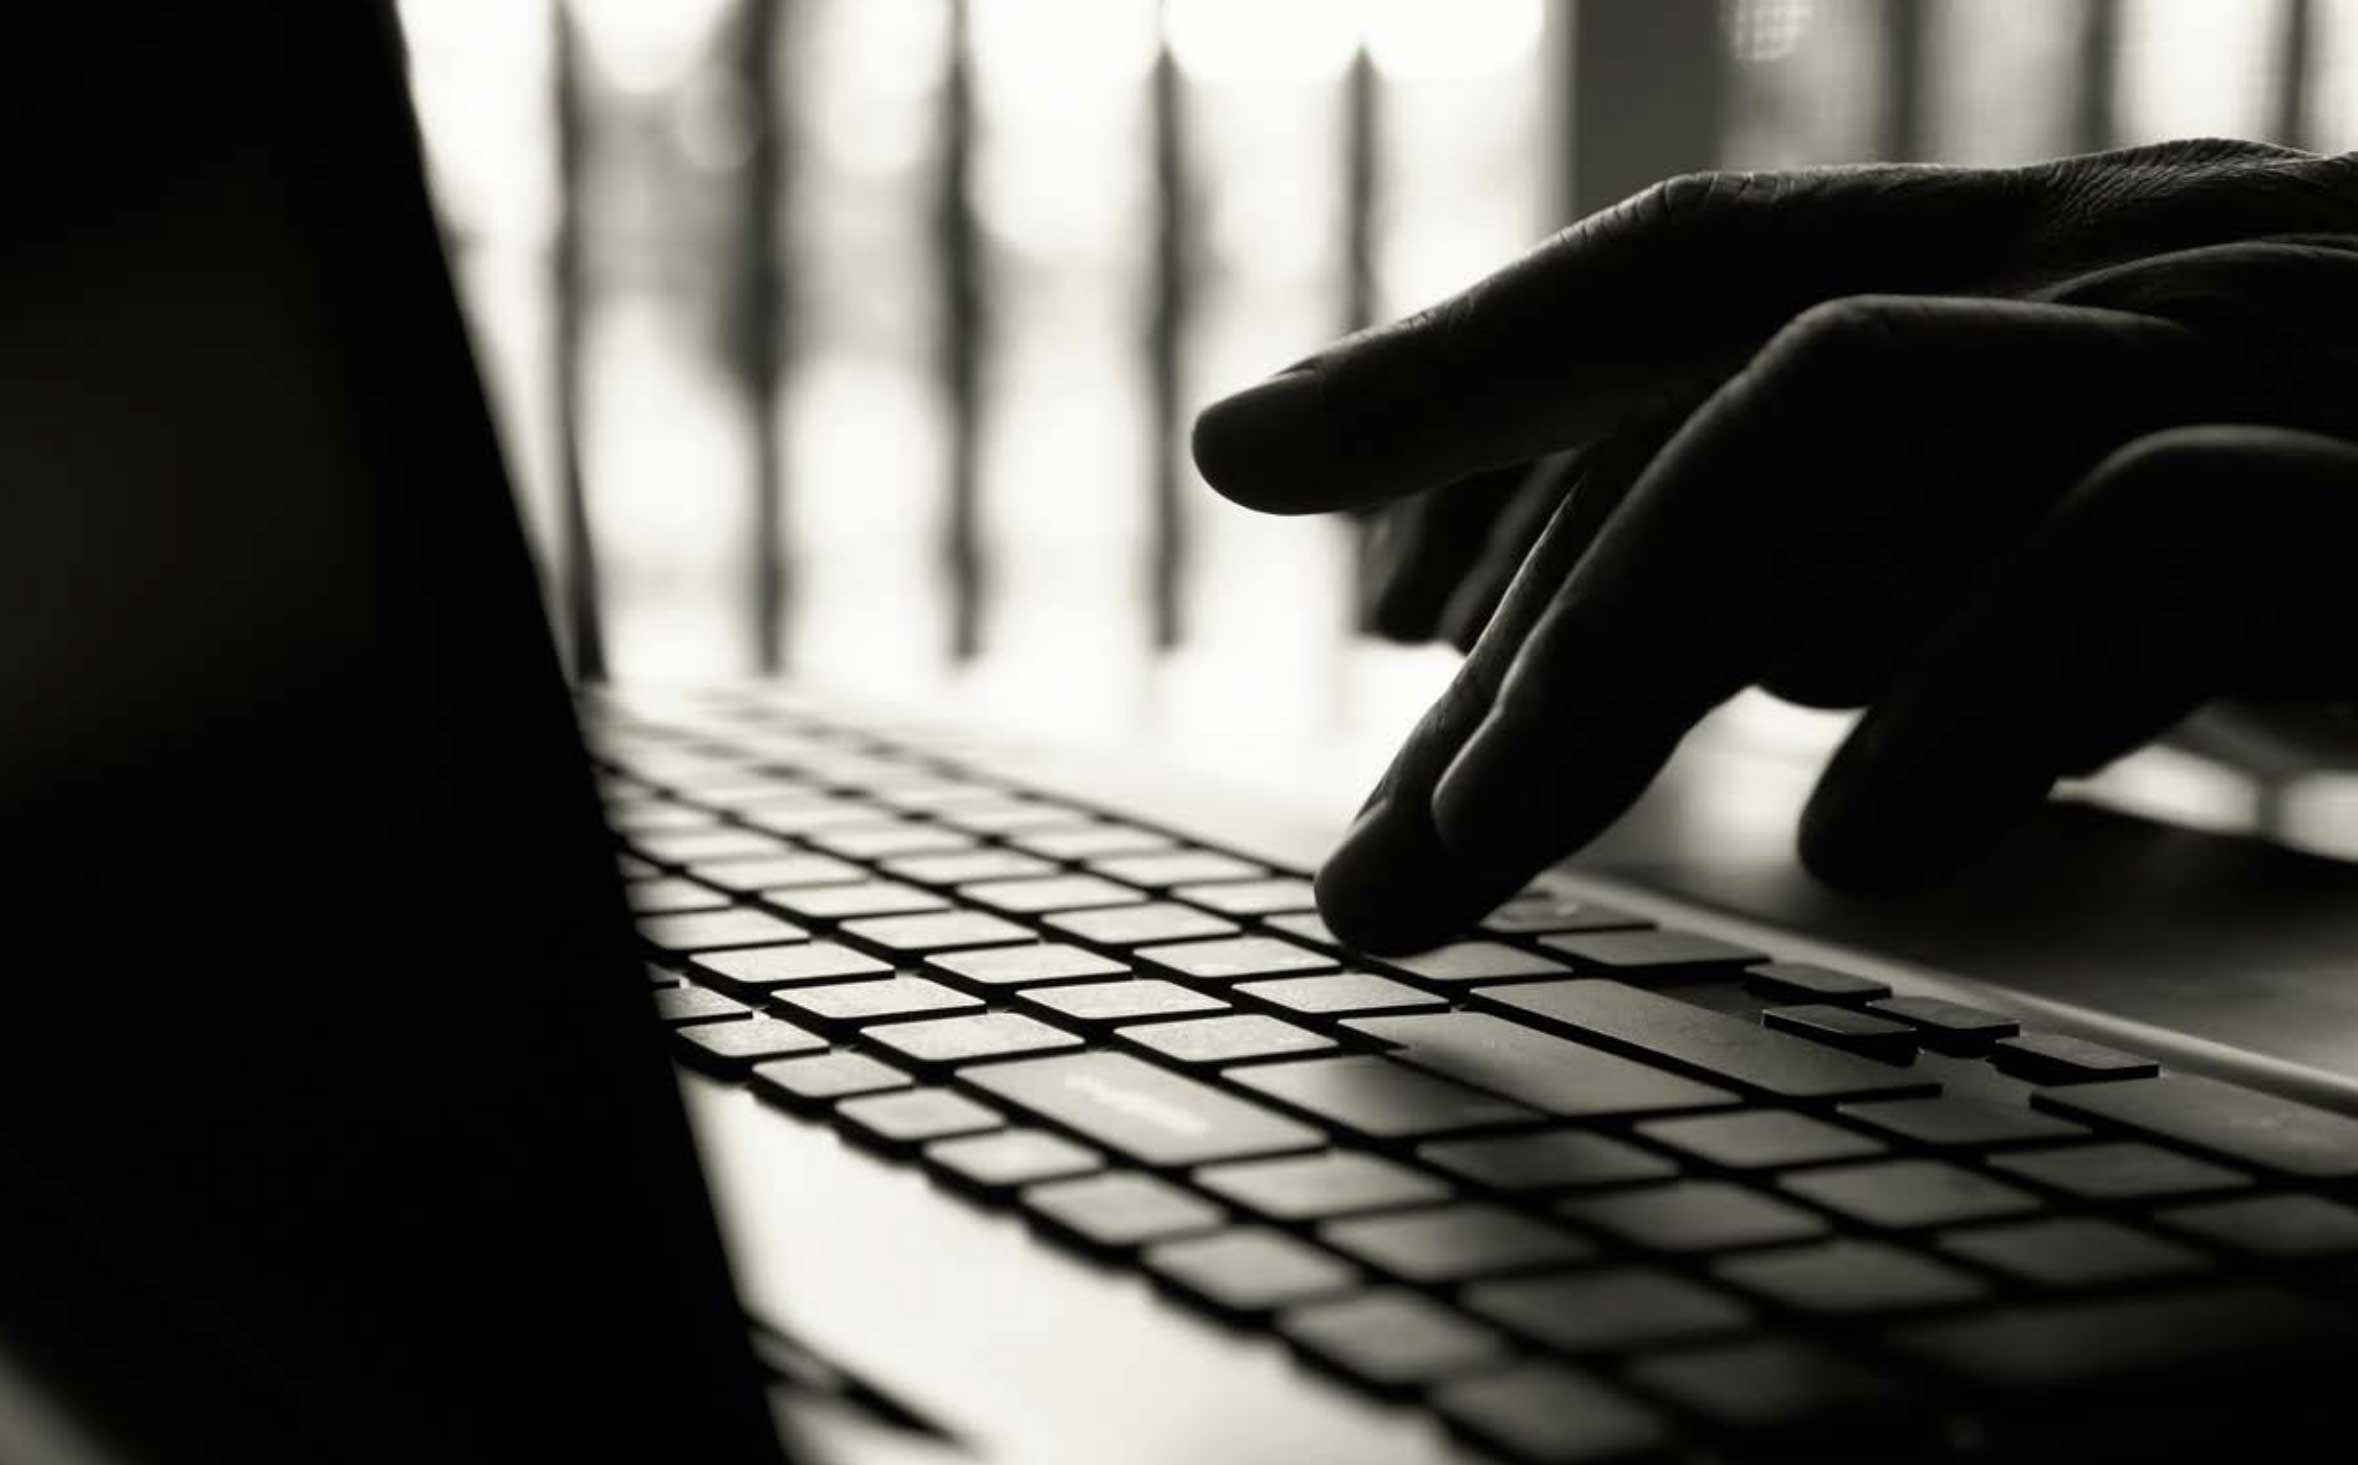 black and white picture - hand typing on a laptop keyboard